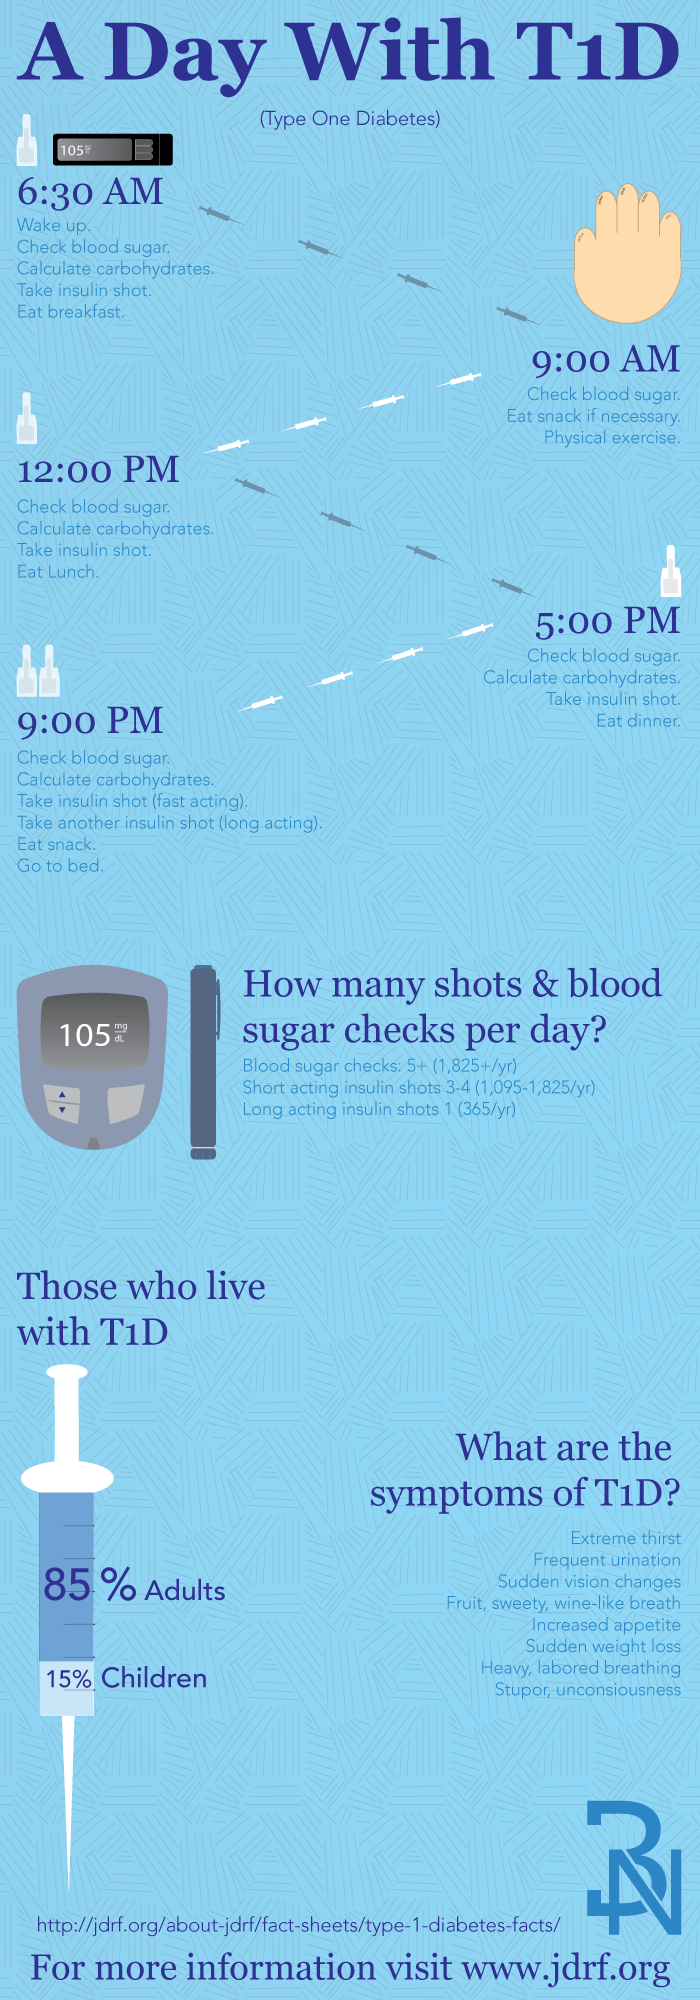 An Infographic About Type One Diabetes It Starts Of With A Typical Day In The Life Of Someone With T1d Then Type One Diabetes Diabetes Facts Type 1 Diabetes